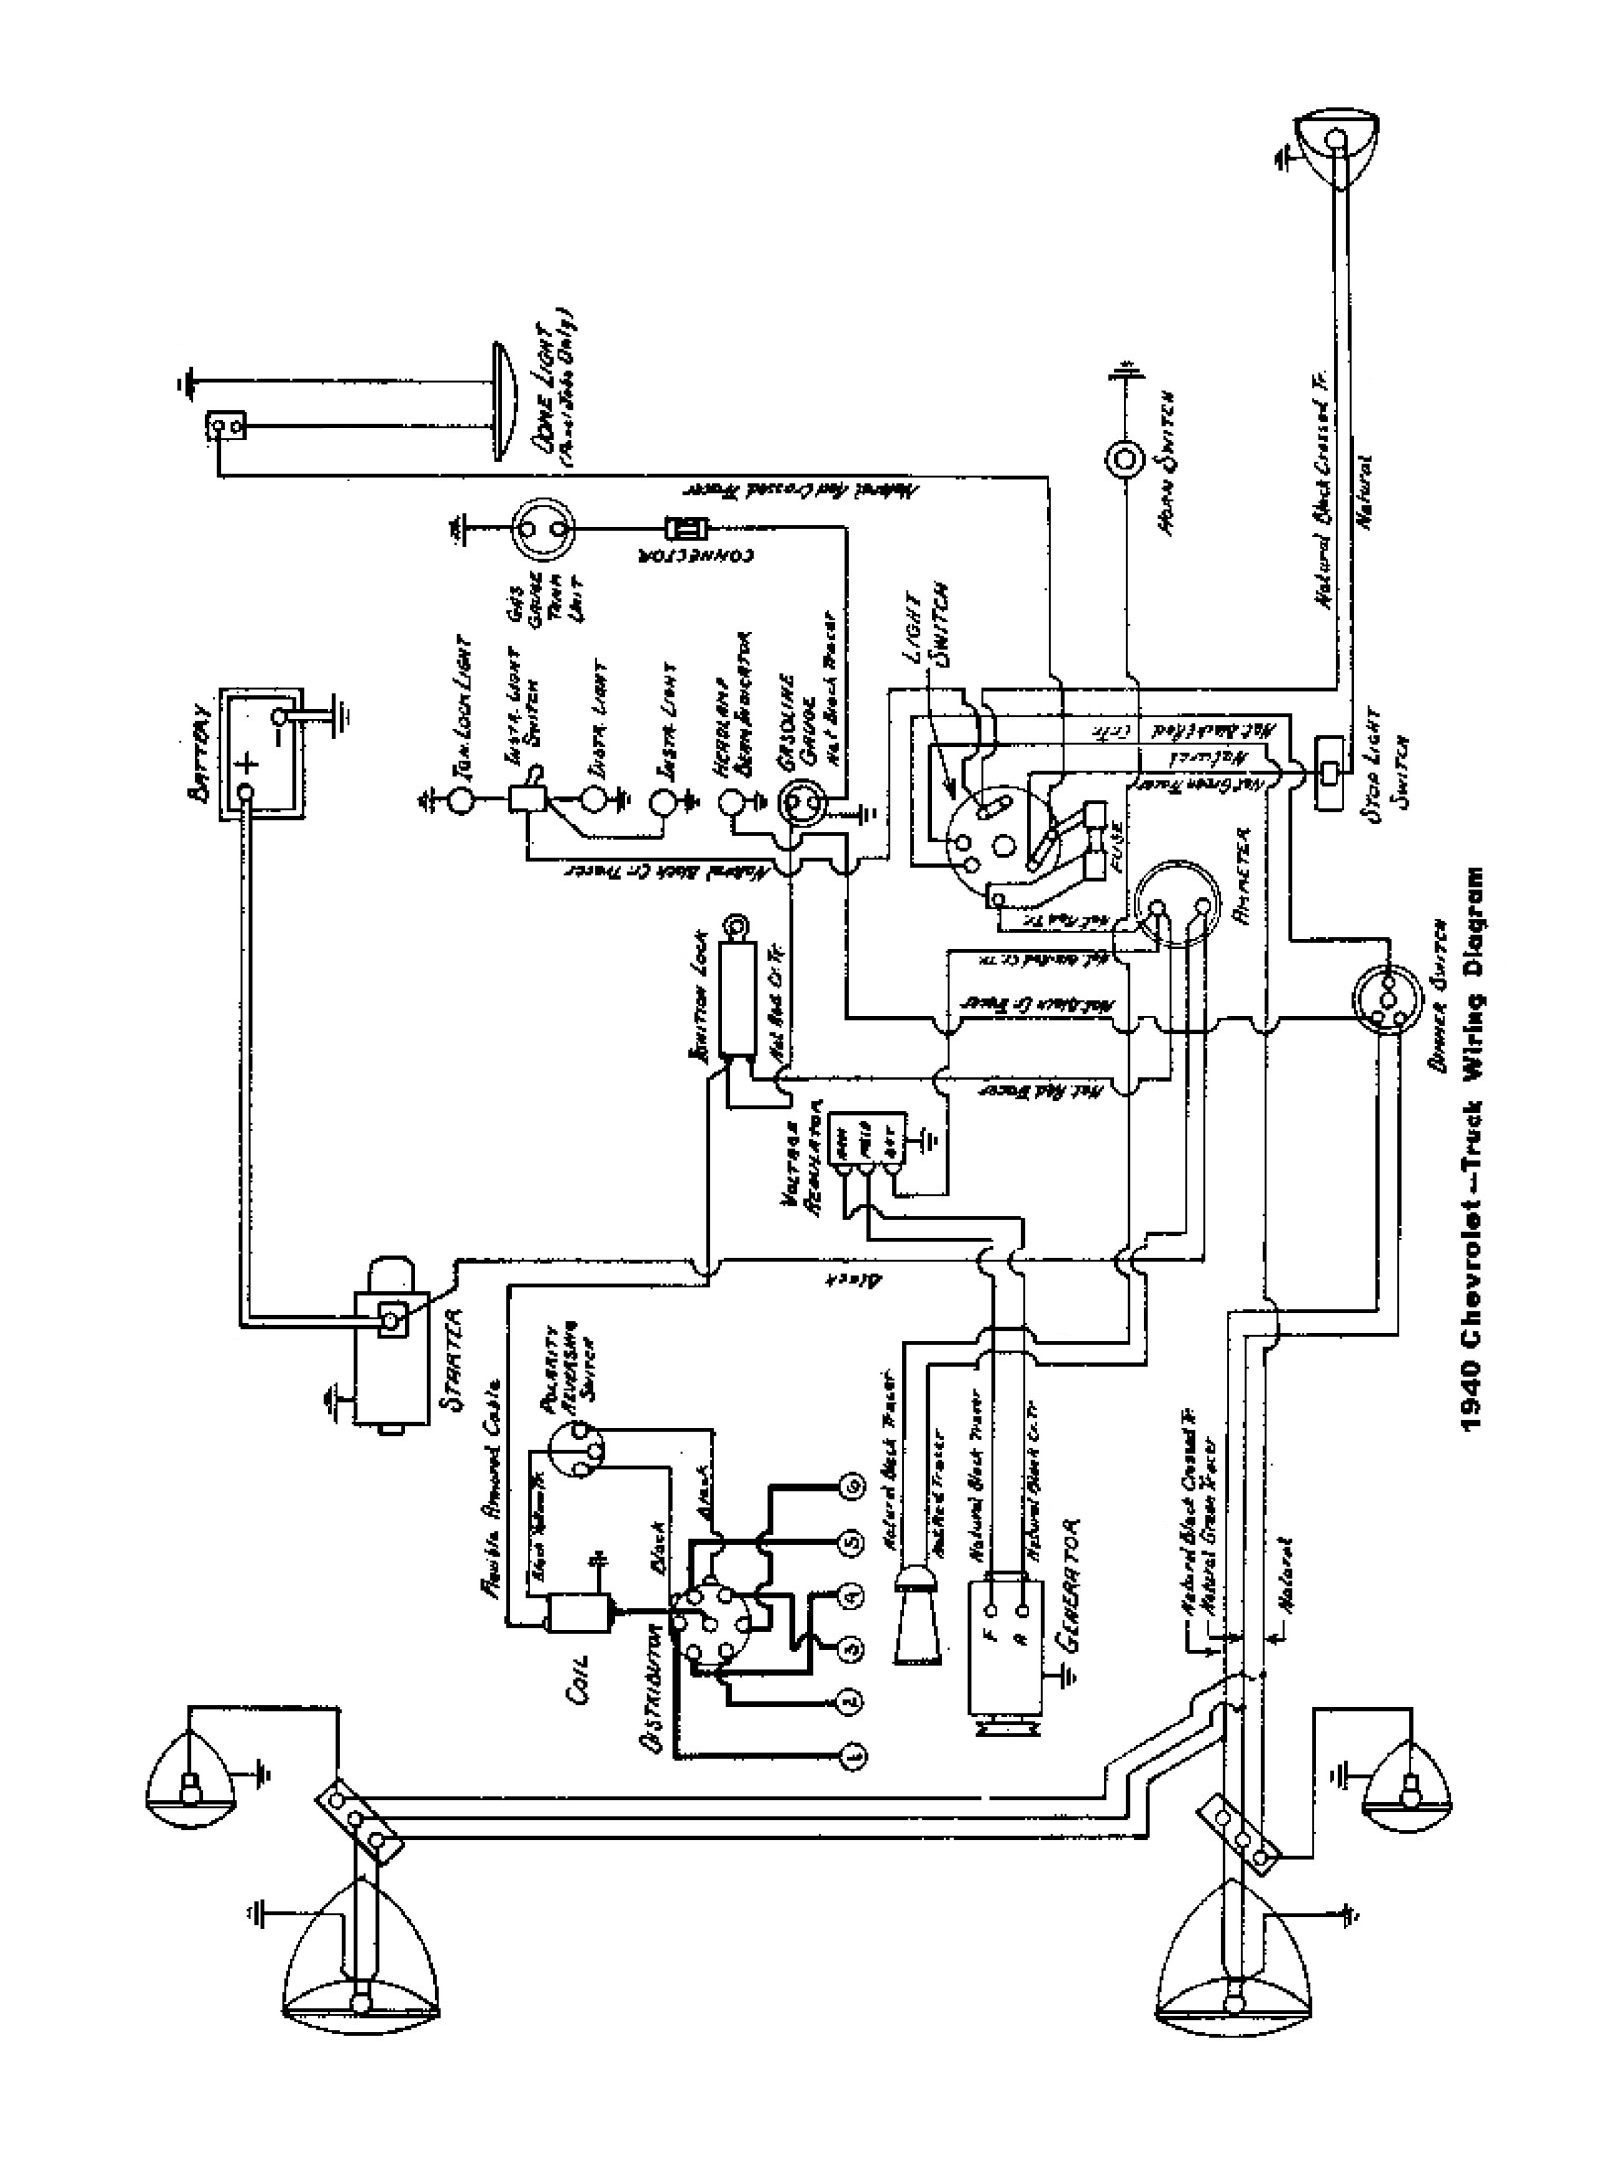 81 chevy luv wire diagram